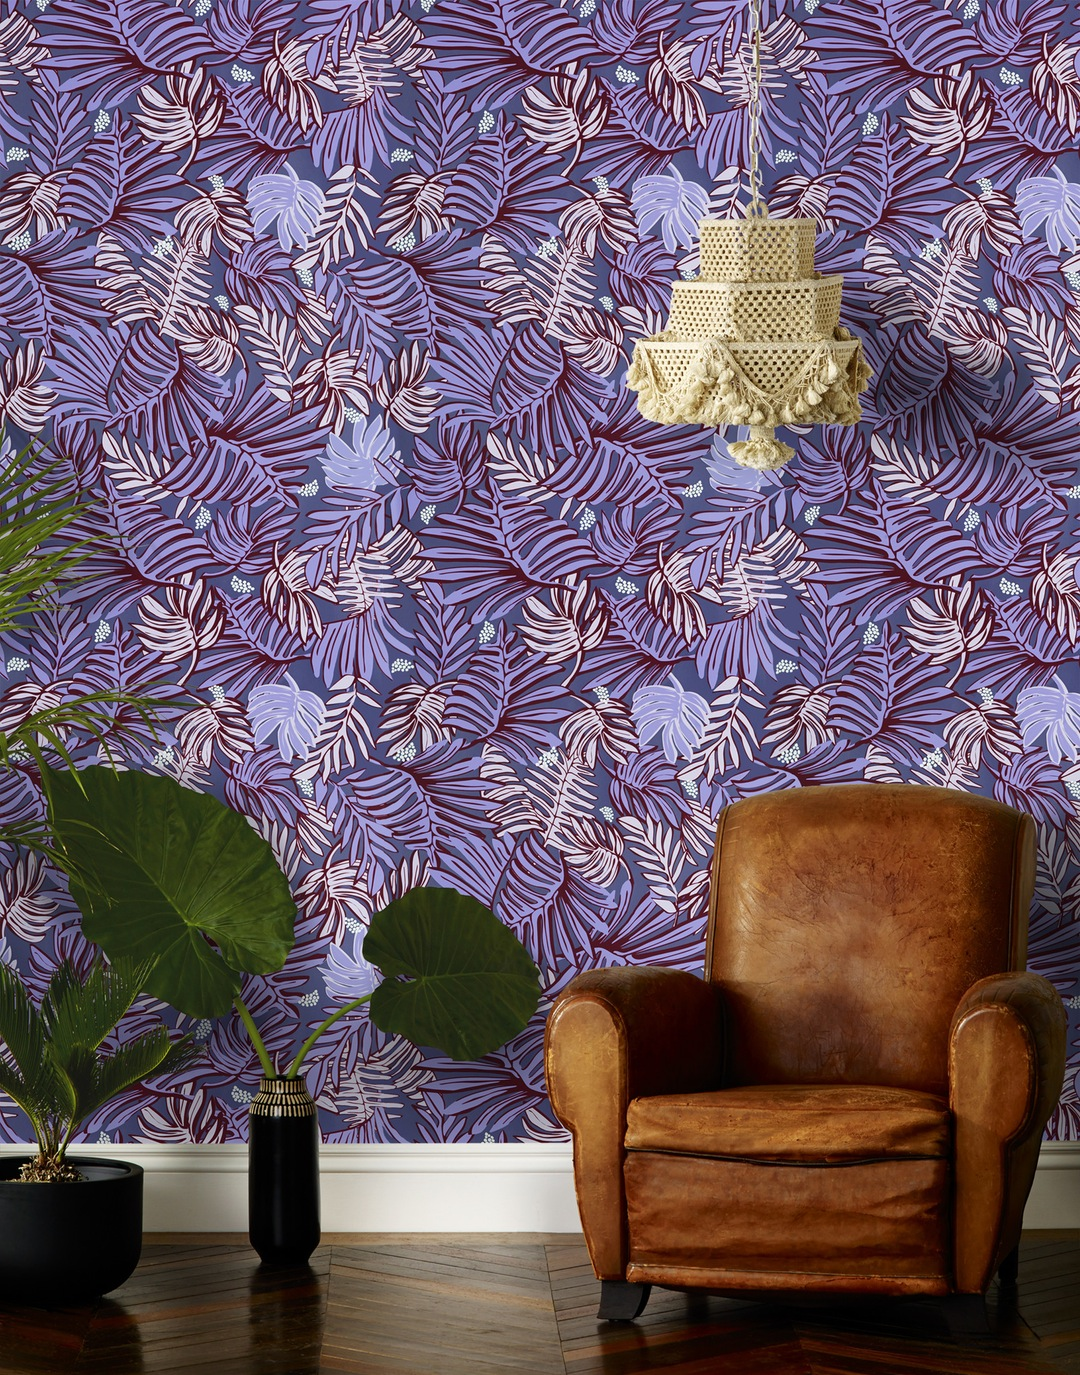 9 Wallpaper Trends to Refresh your Home for Summer wallpaper trends 8 Wallpaper Trends to Refresh your Home for Summer 9 Wallpaper Trends to Refresh your Home for Summer7